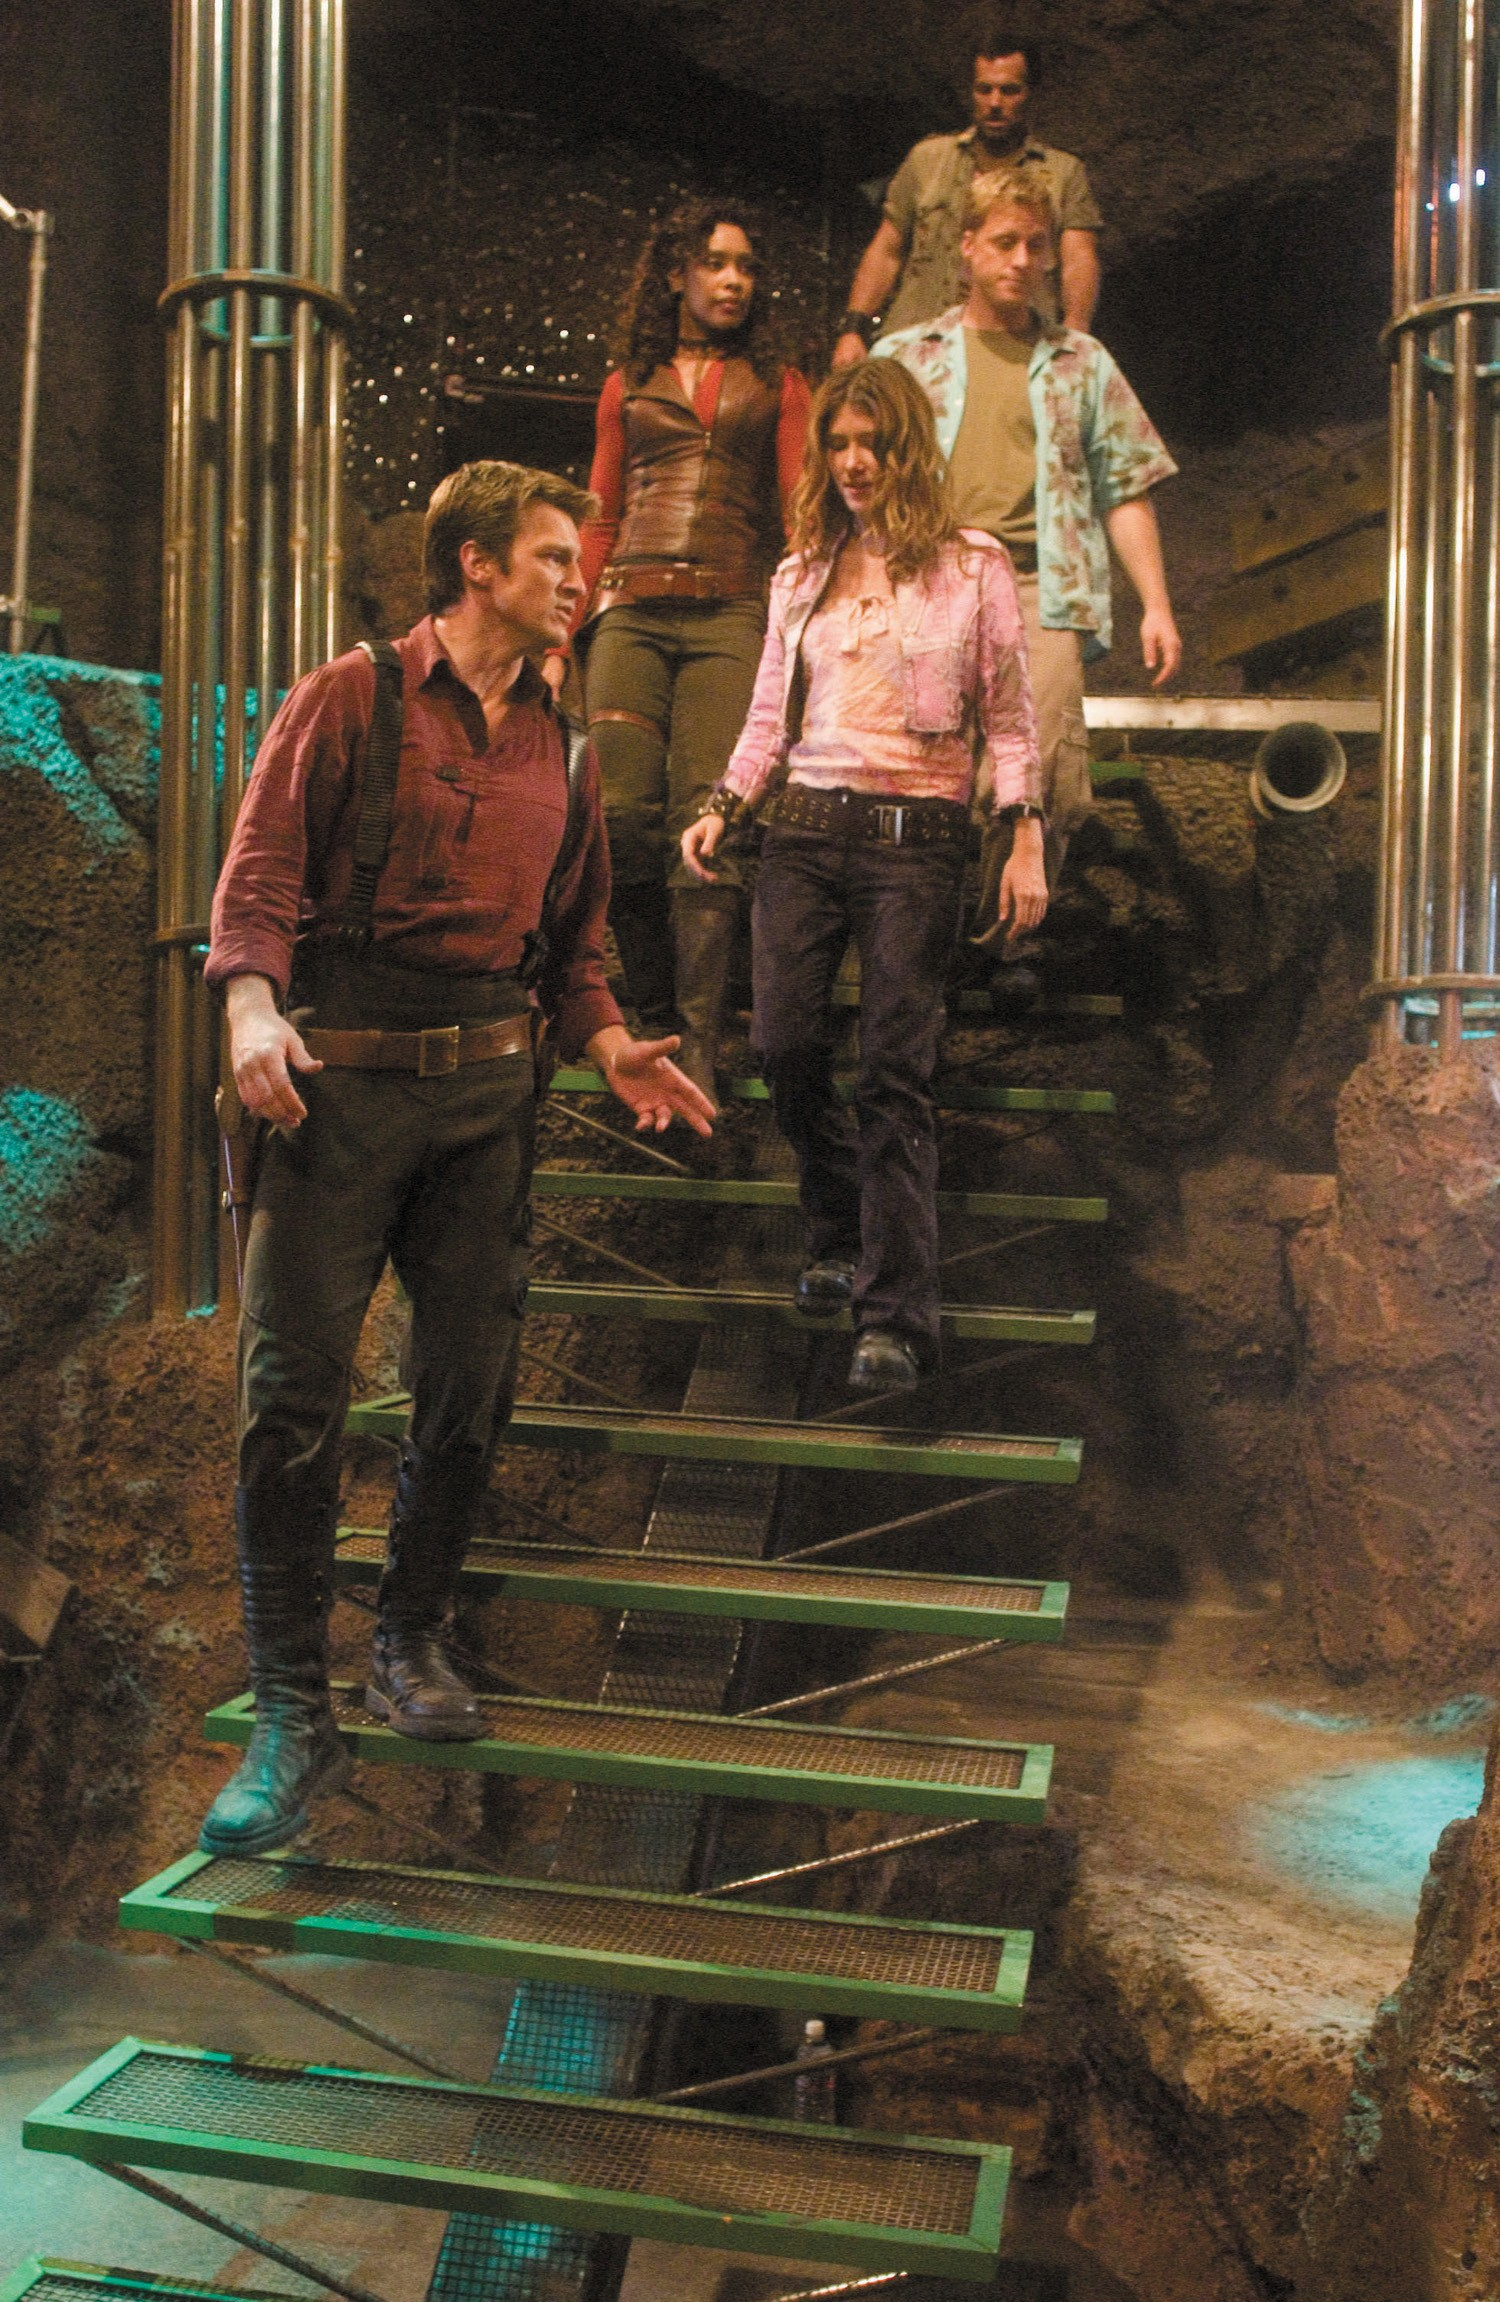 Adam Baldwin,Alan Tudyk,Gina Torres,Jewel Staite,Nathan Fillion